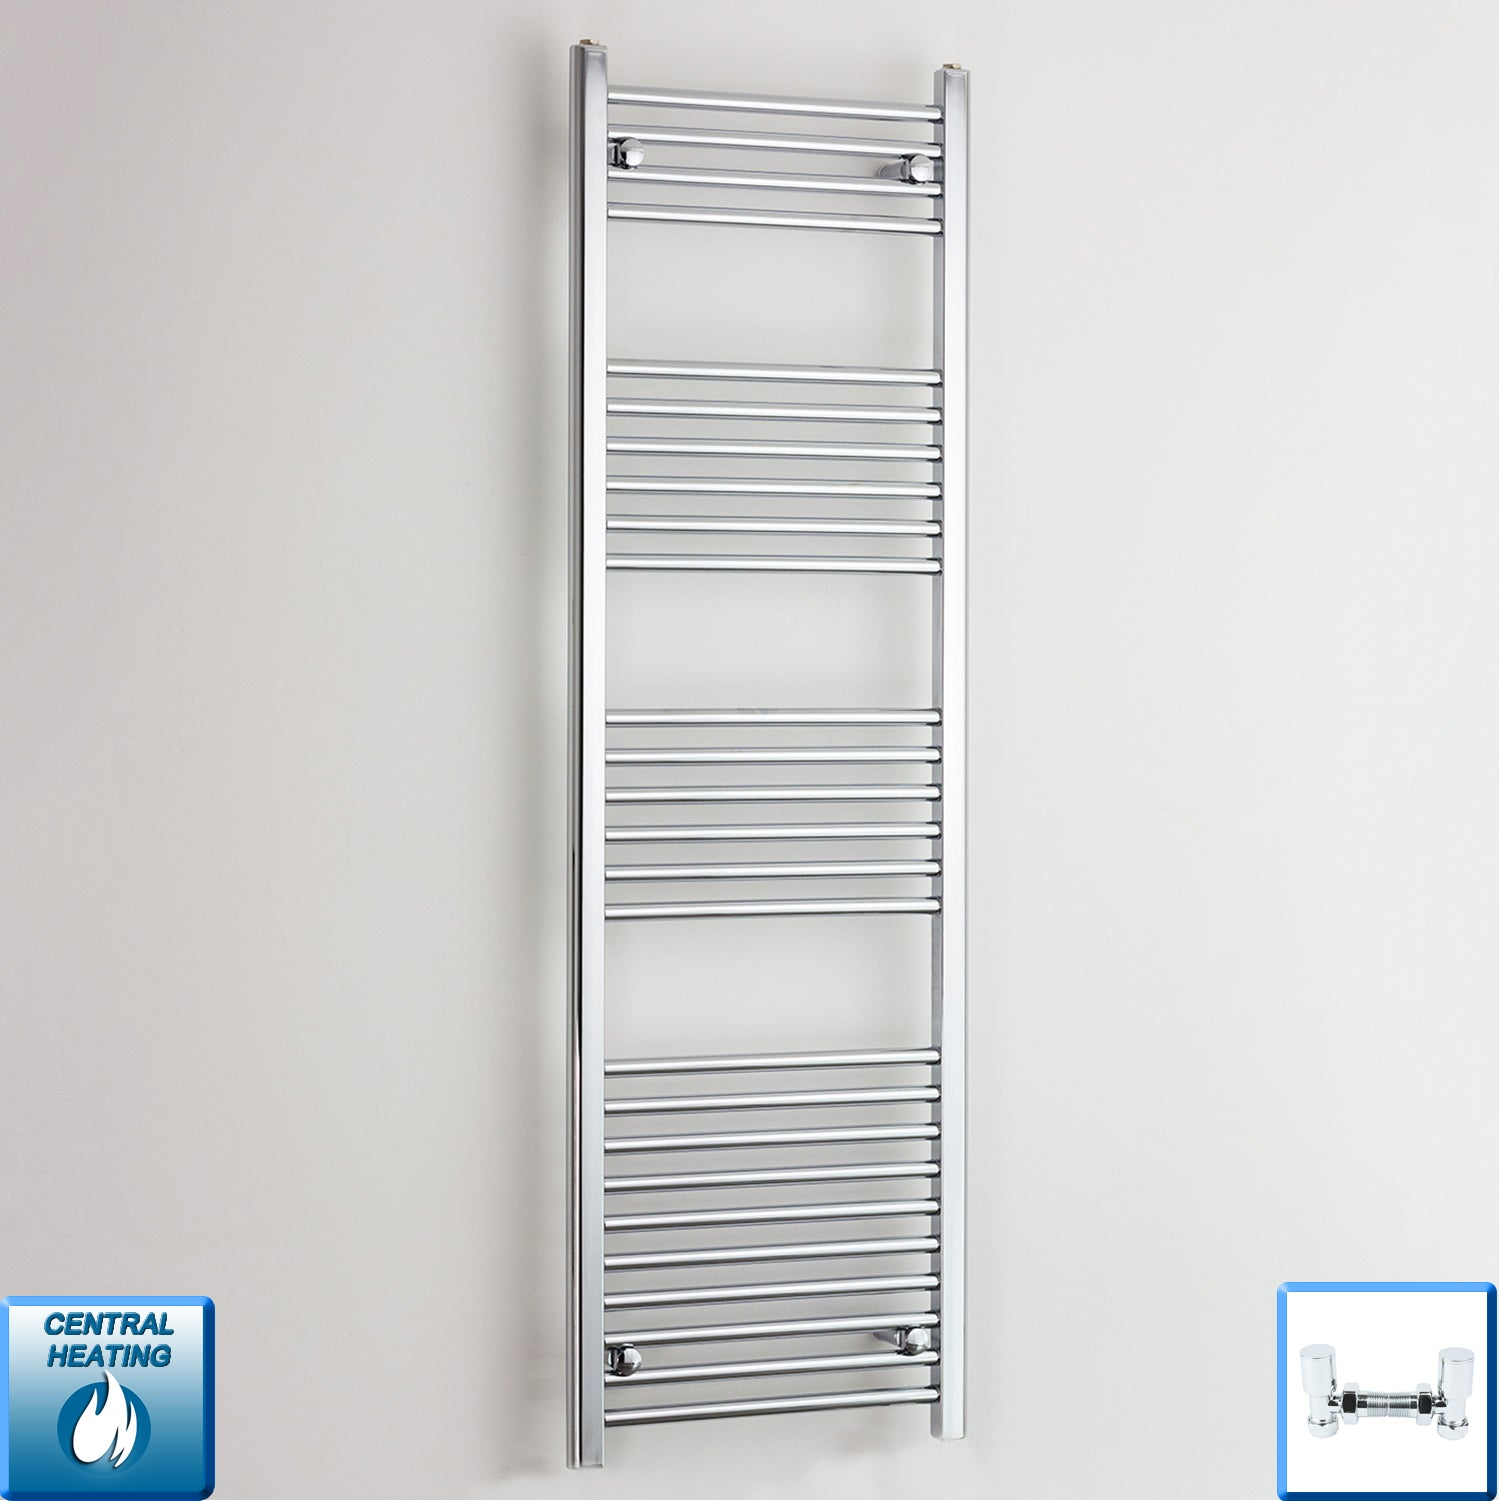 400mm Wide 1600mm High Chrome Towel Rail Radiator With Angled Valve